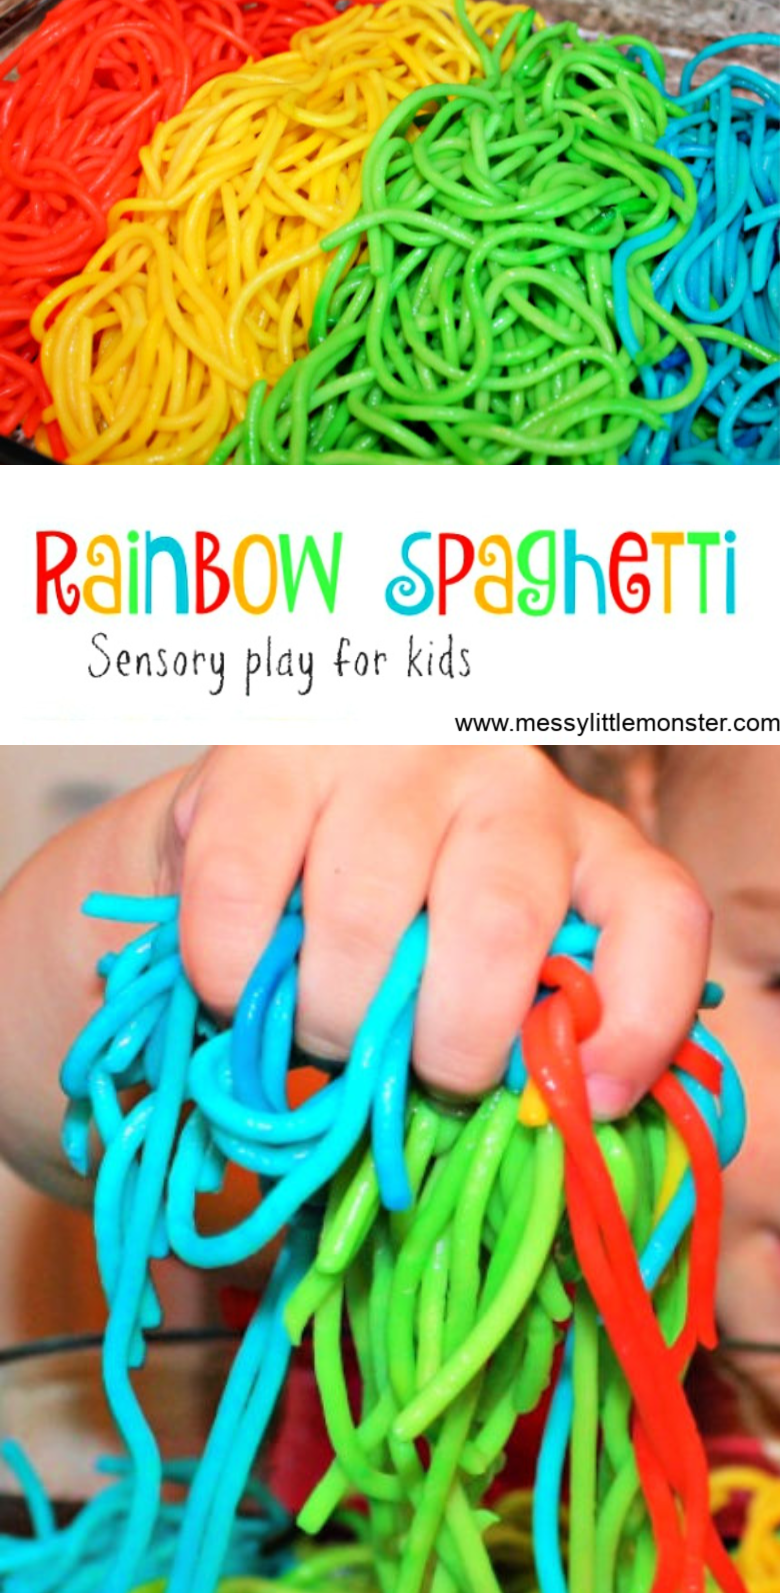 How to Make Rainbow Spaghetti for Sensory Play images